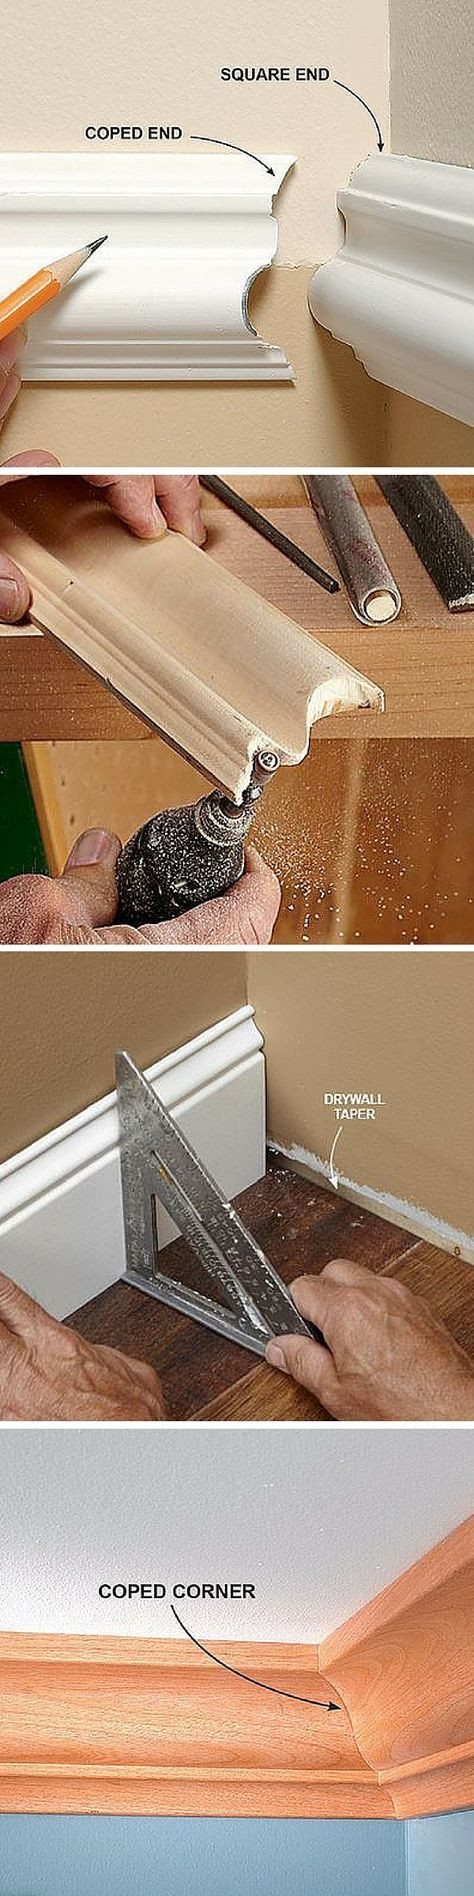 porta nailer hardwood floor nailer of 79 best wood working images on pinterest woodworking crown pertaining to how to cope joints